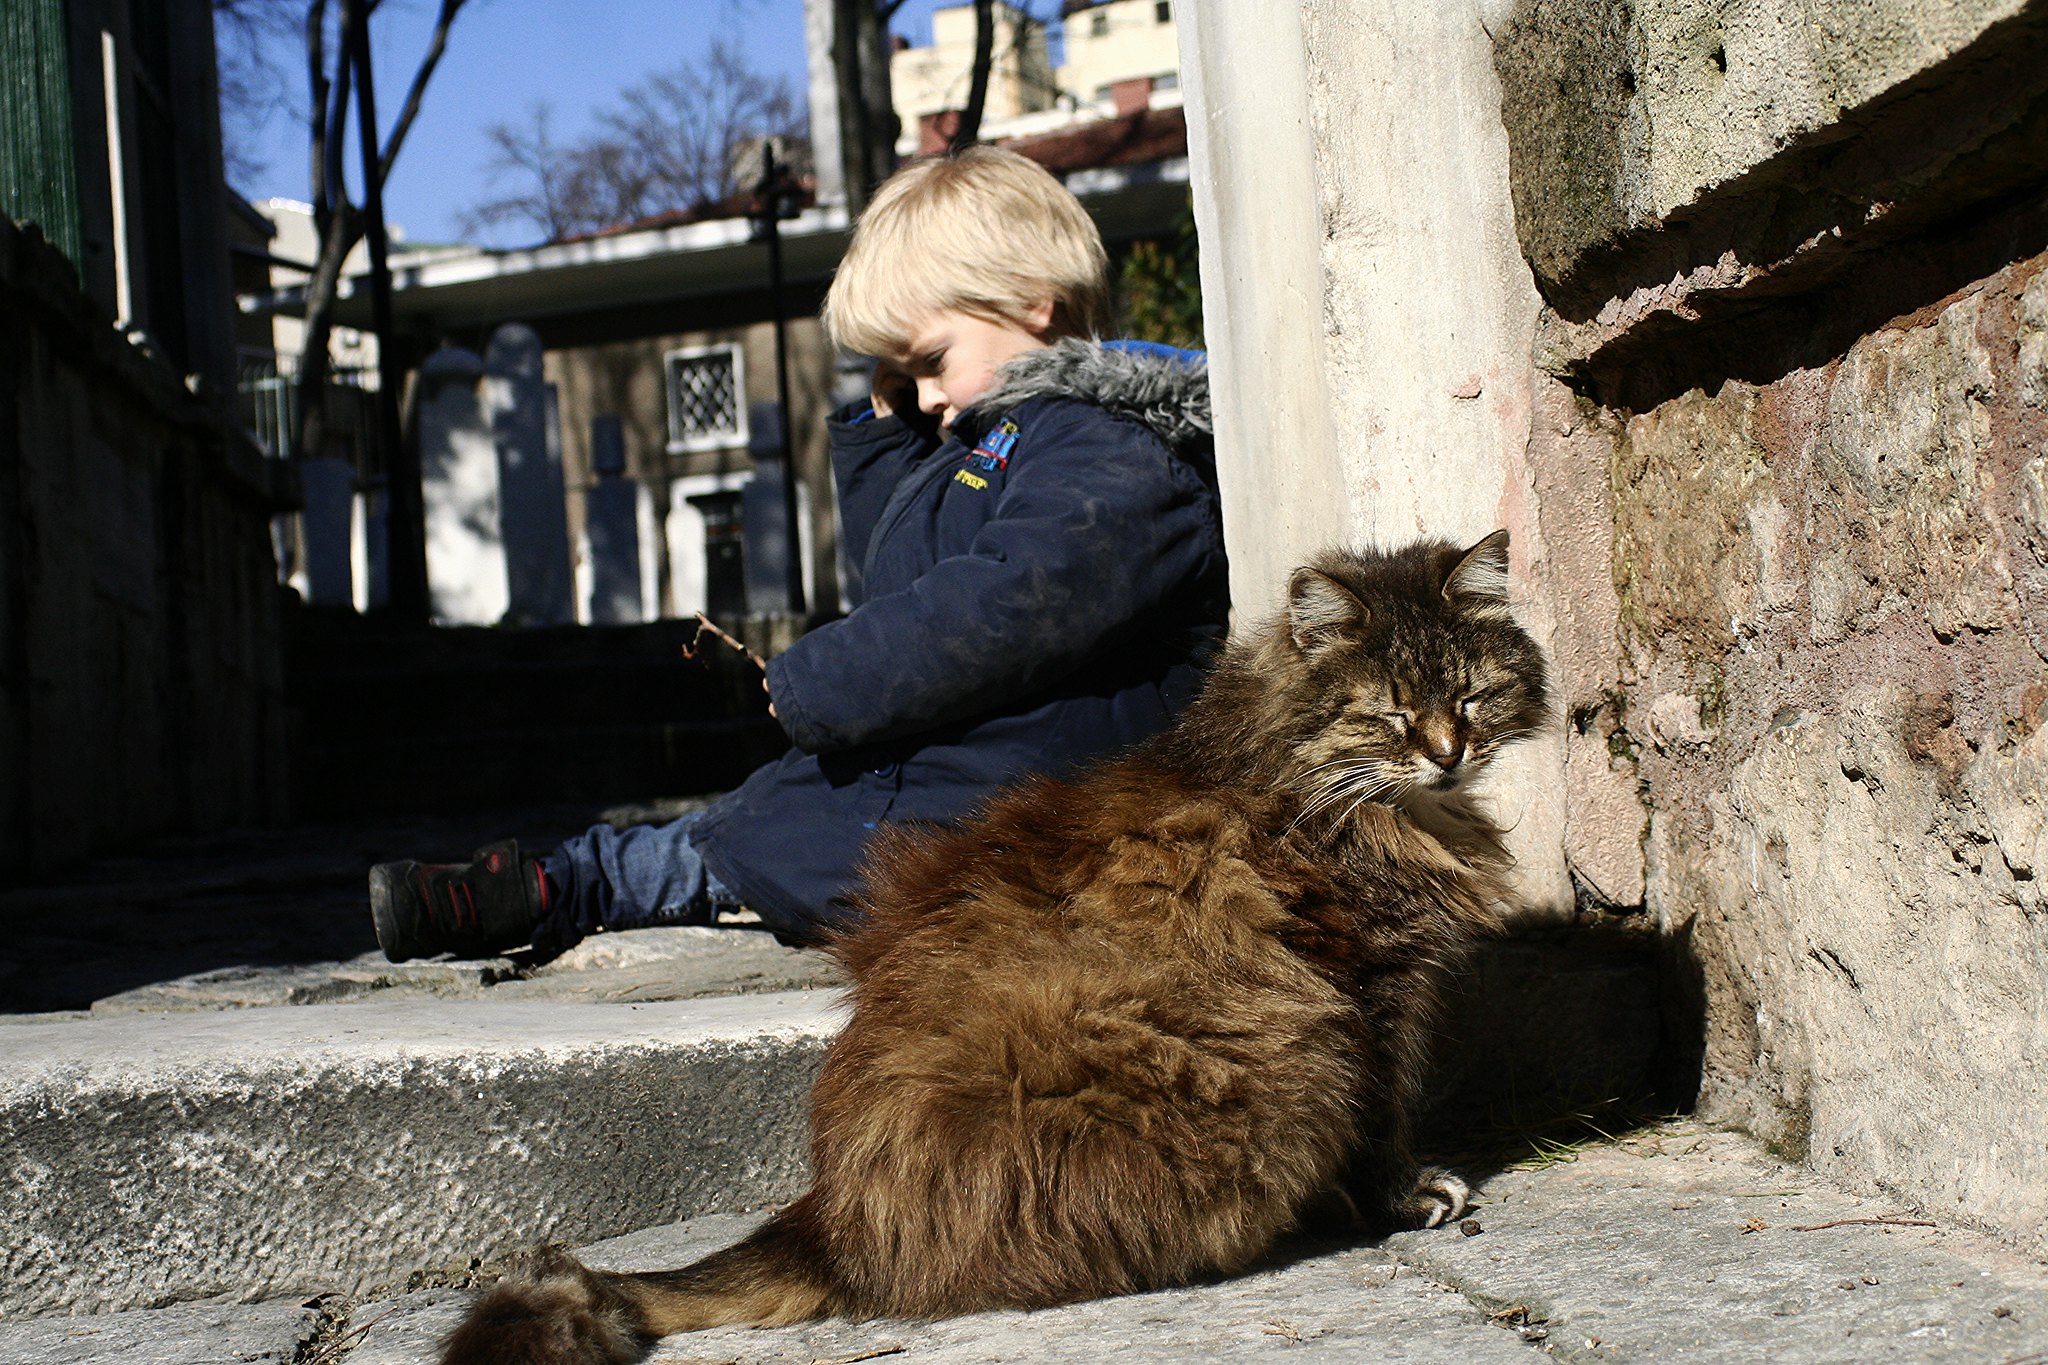 Contemplation and the cat.